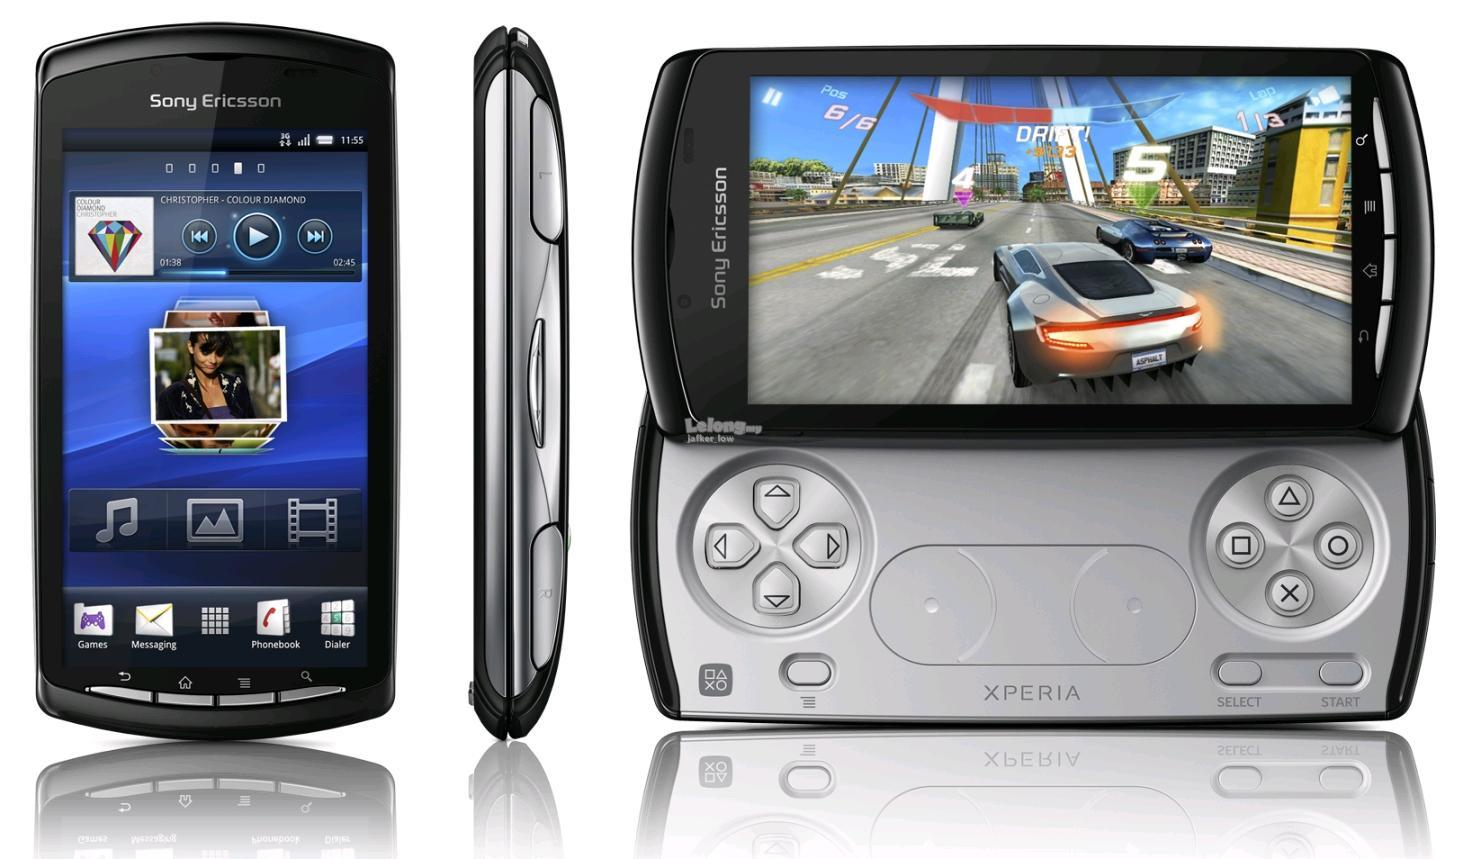 BRAND NEW SONY ERICSSON XPERIA PLAY